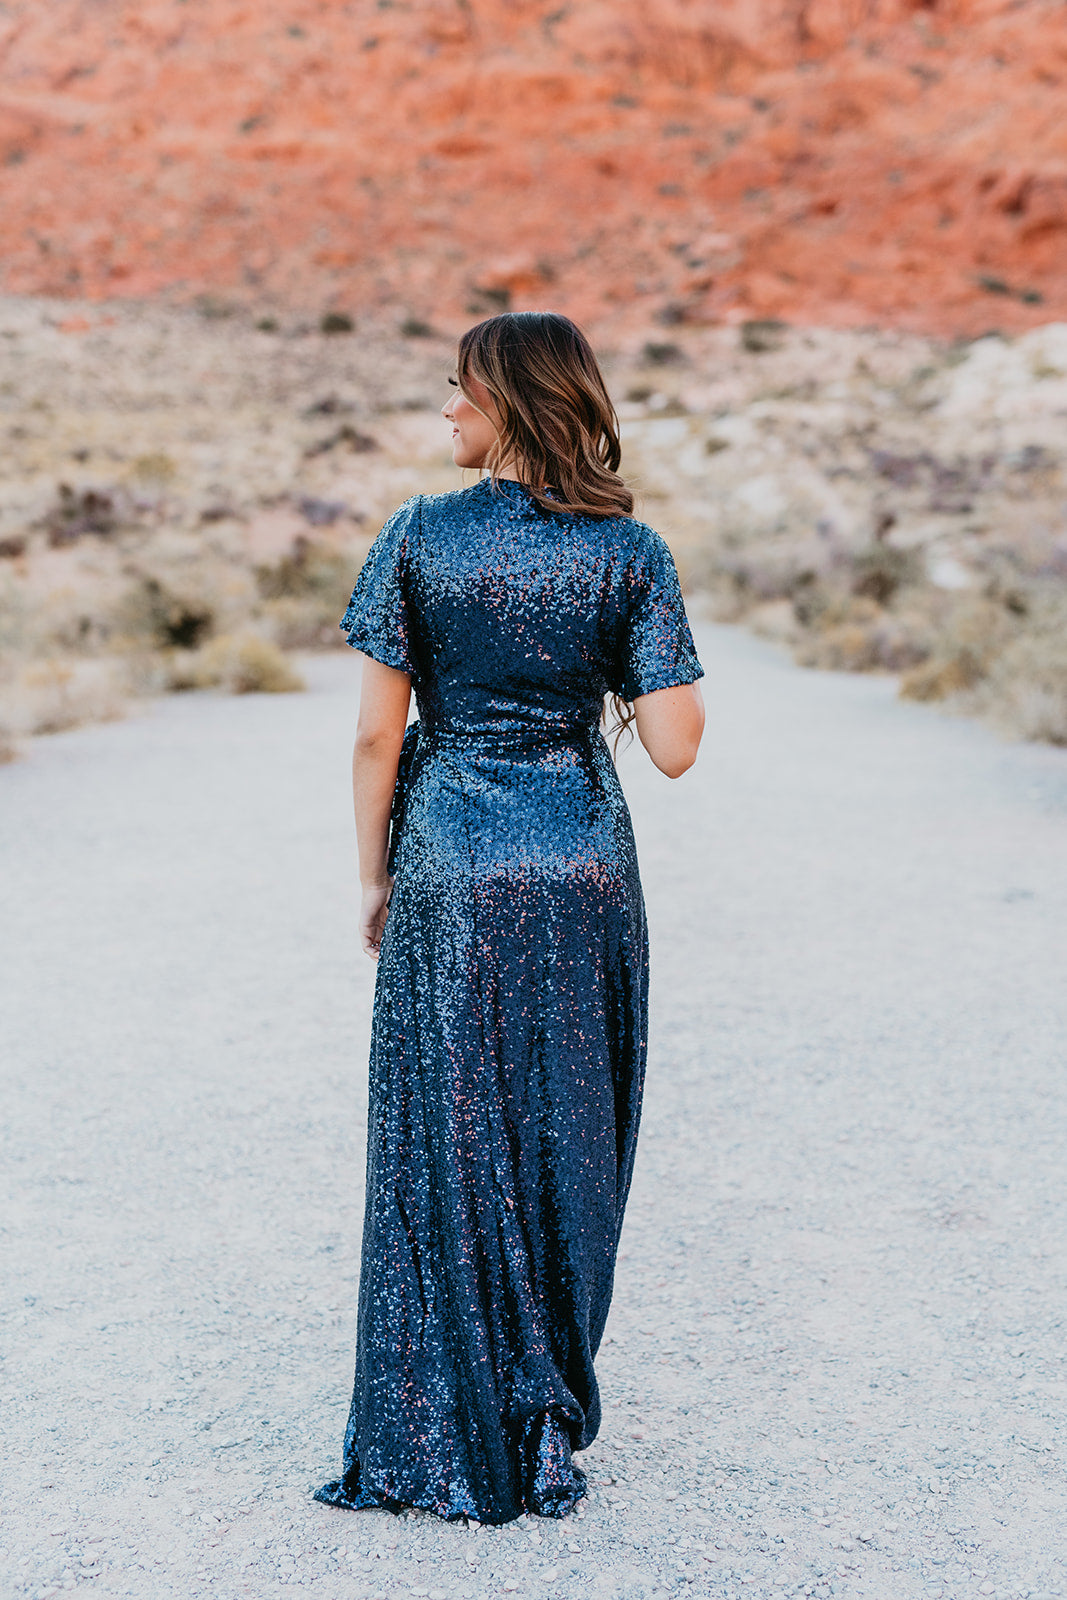 THE ANASTASIA WRAP DRESS IN SEQUINED SAPPHIRE